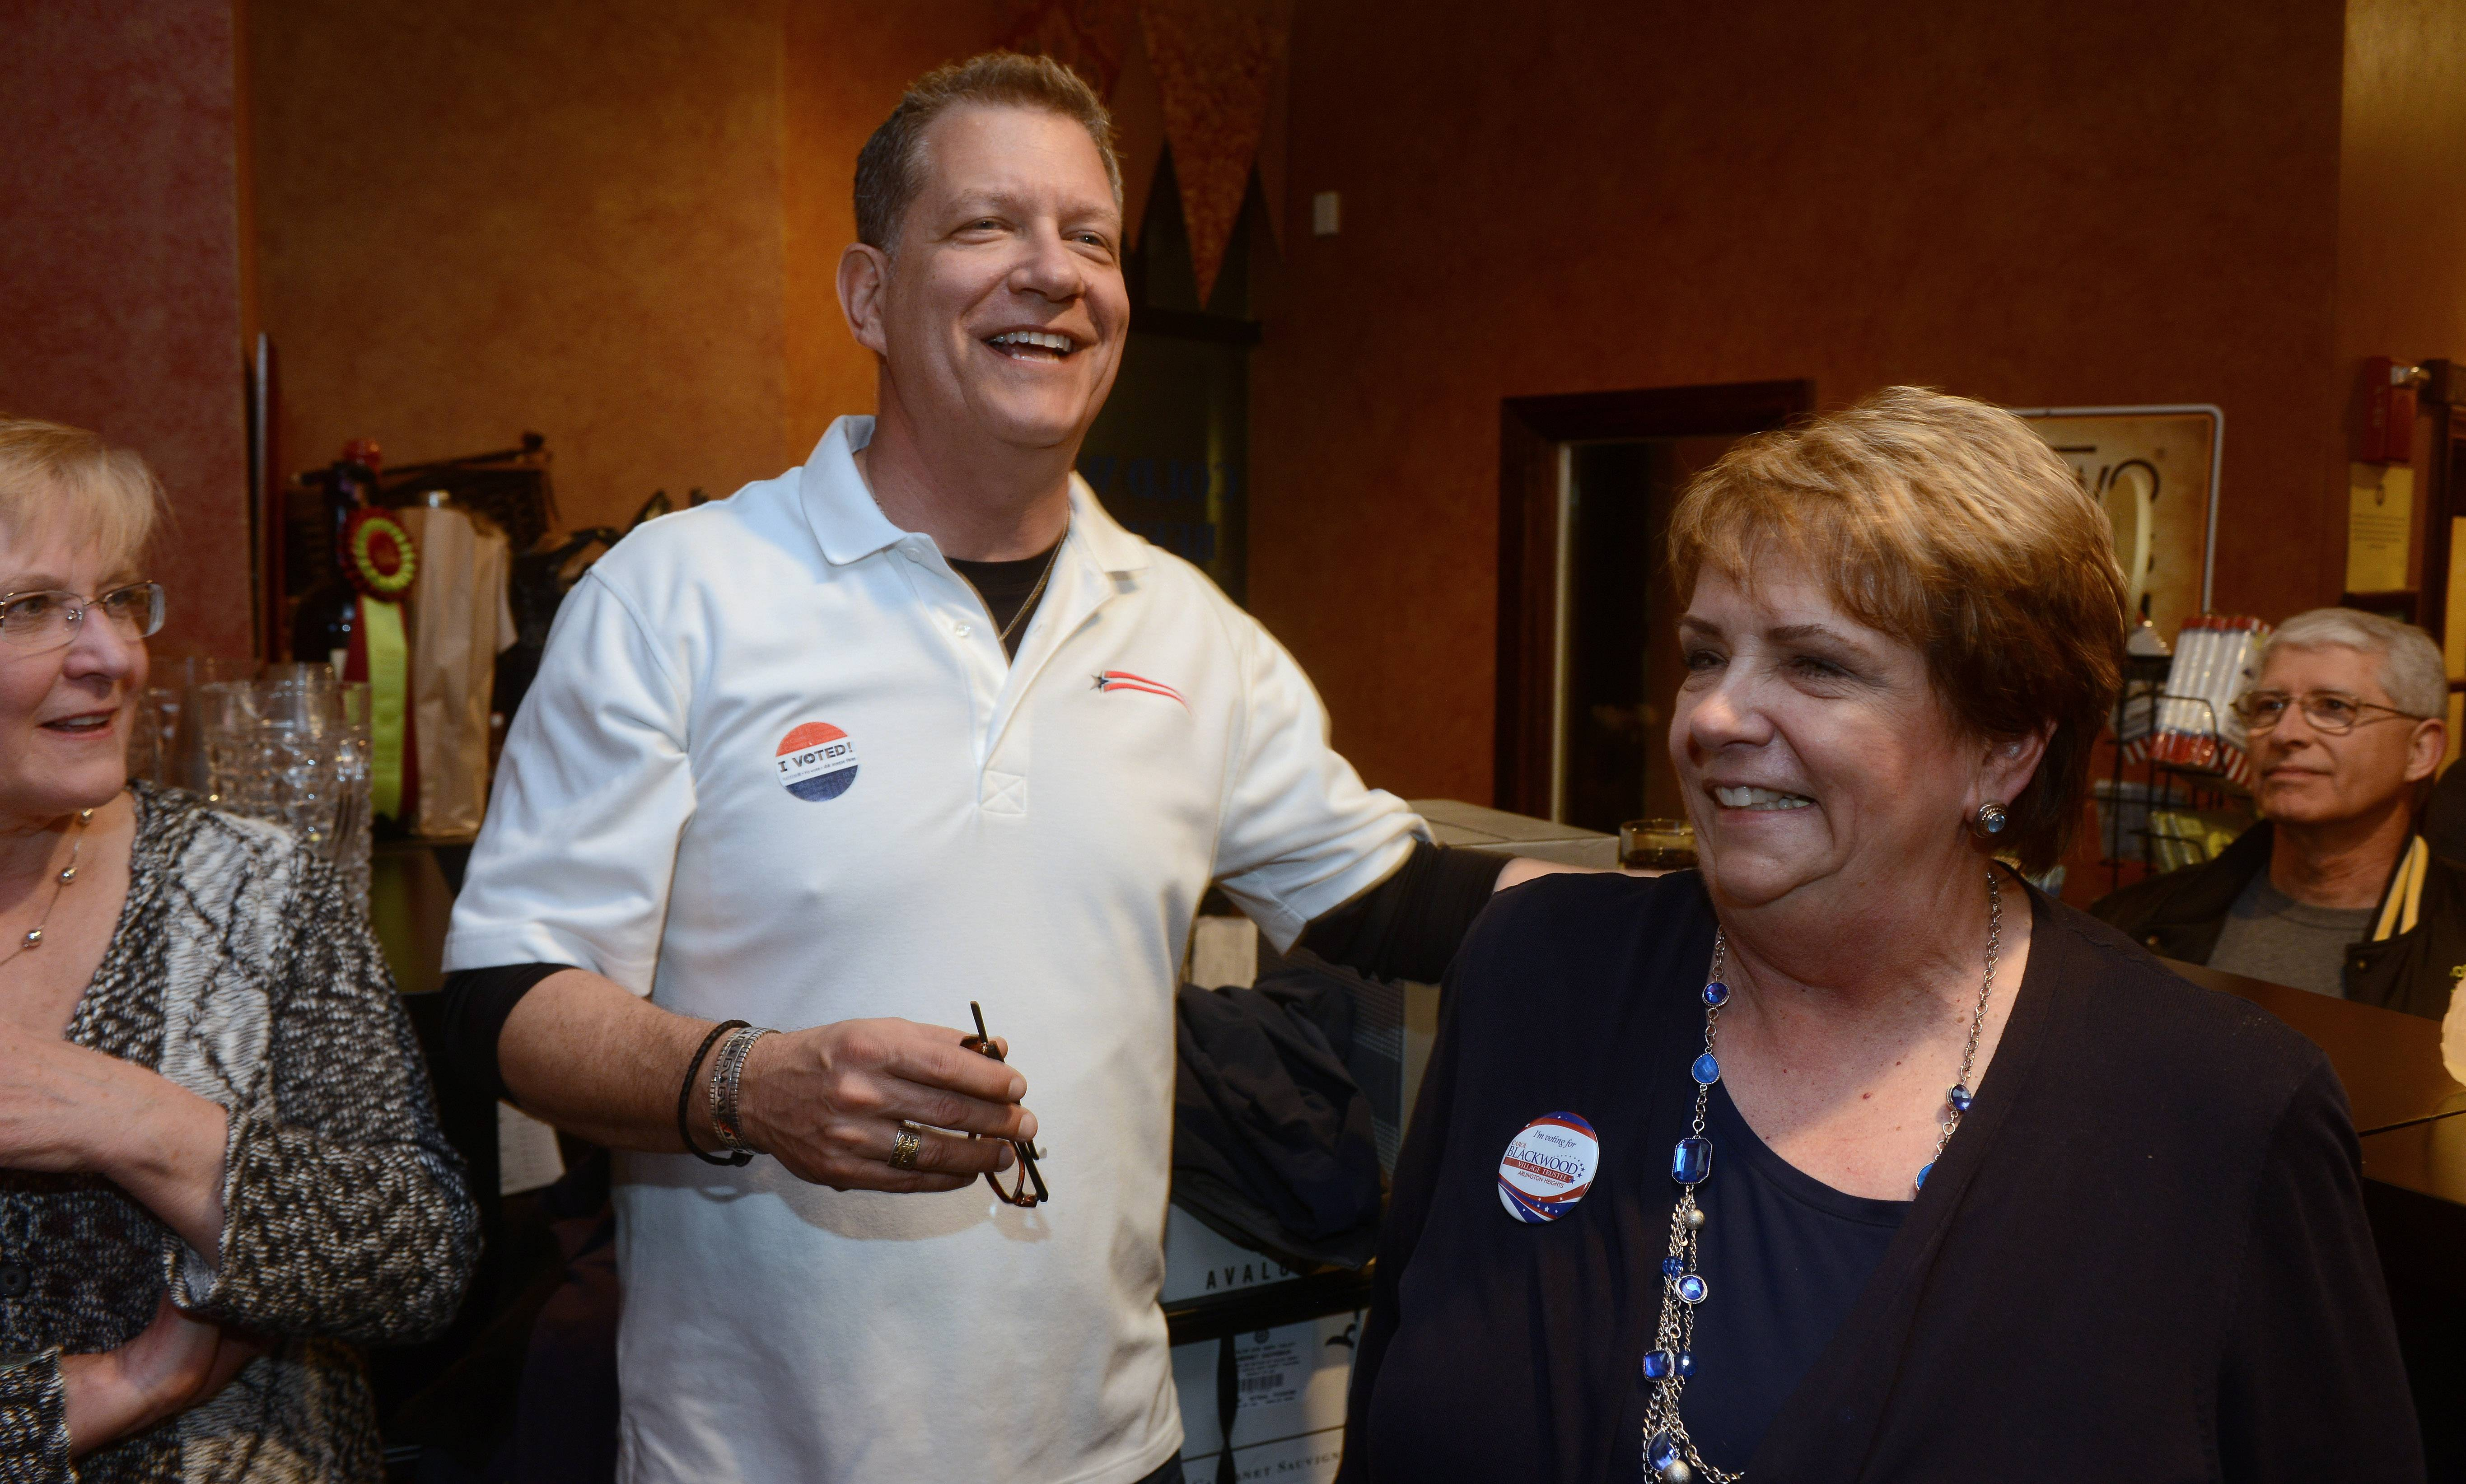 Arlington Heights Trustees Mike Sidor and Carol Blackwood, who won re-election in 2015, have decided not to run again in the upcoming local elections.